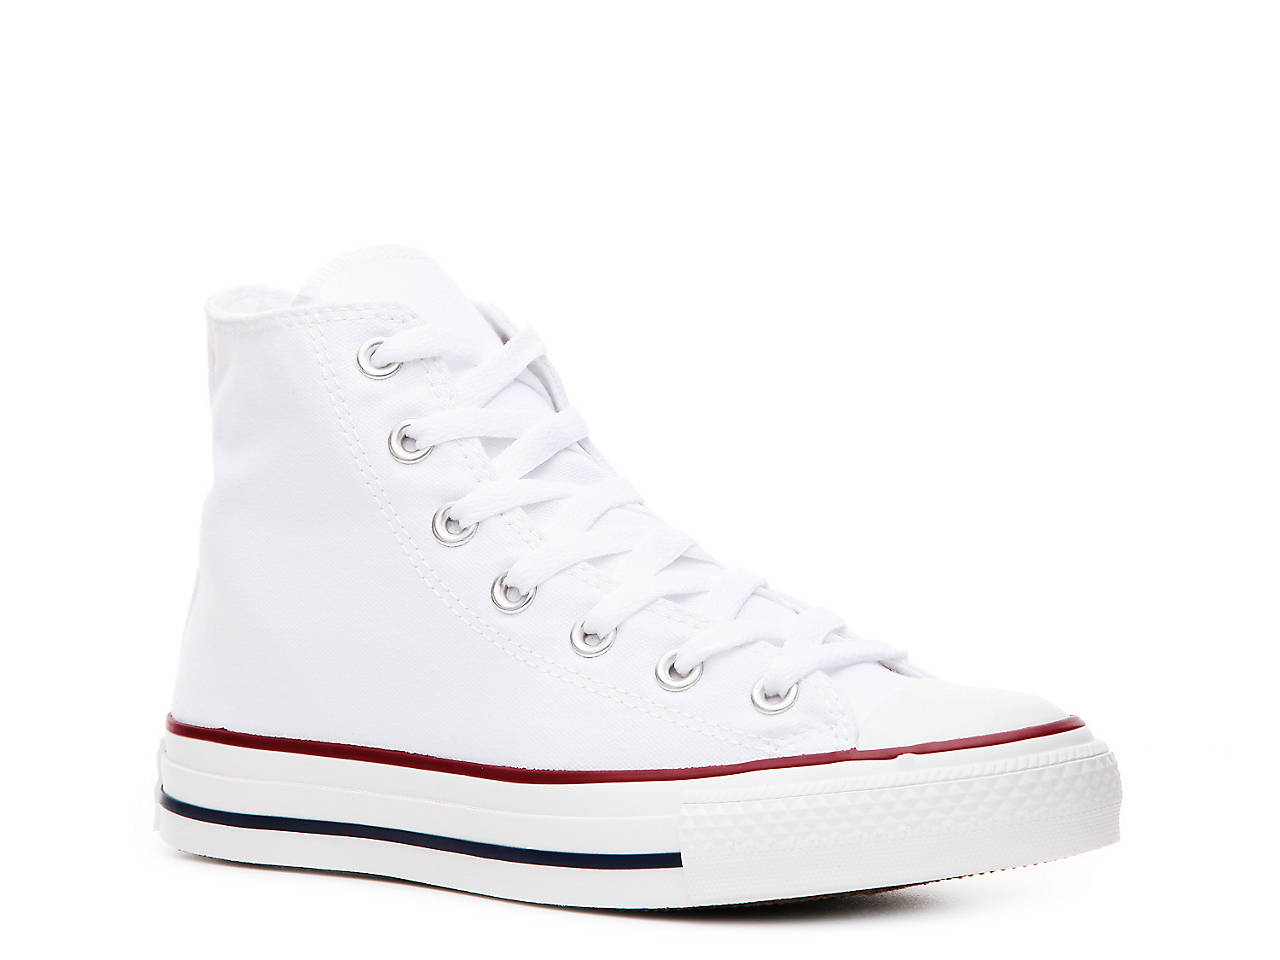 1b4323404178 Converse Chuck Taylor All Star High-Top Sneaker - Women s Women s ...